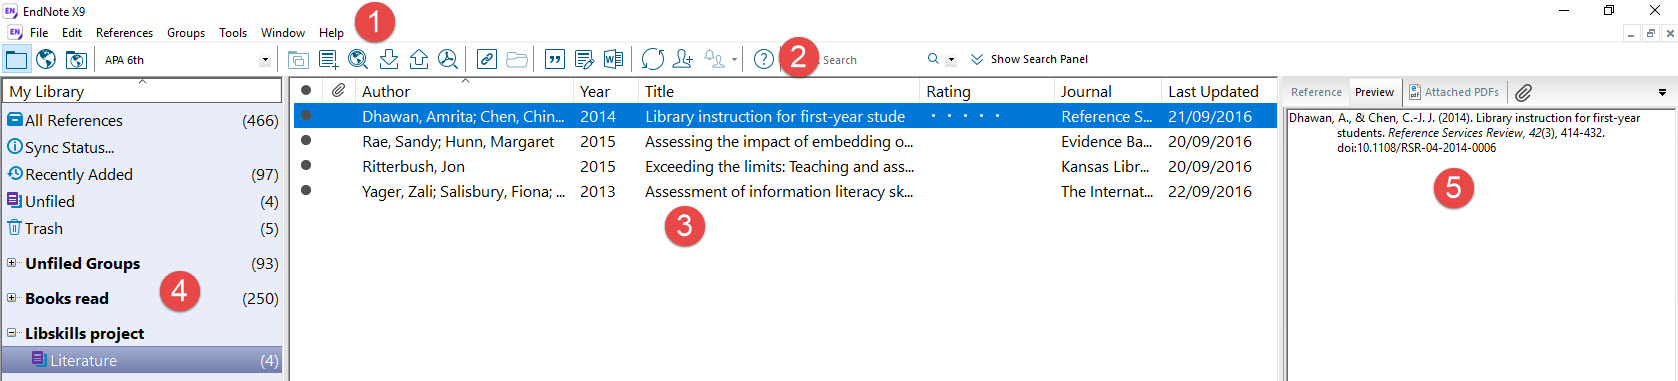 screenshot of EndNote interface with appropriate areas numbered